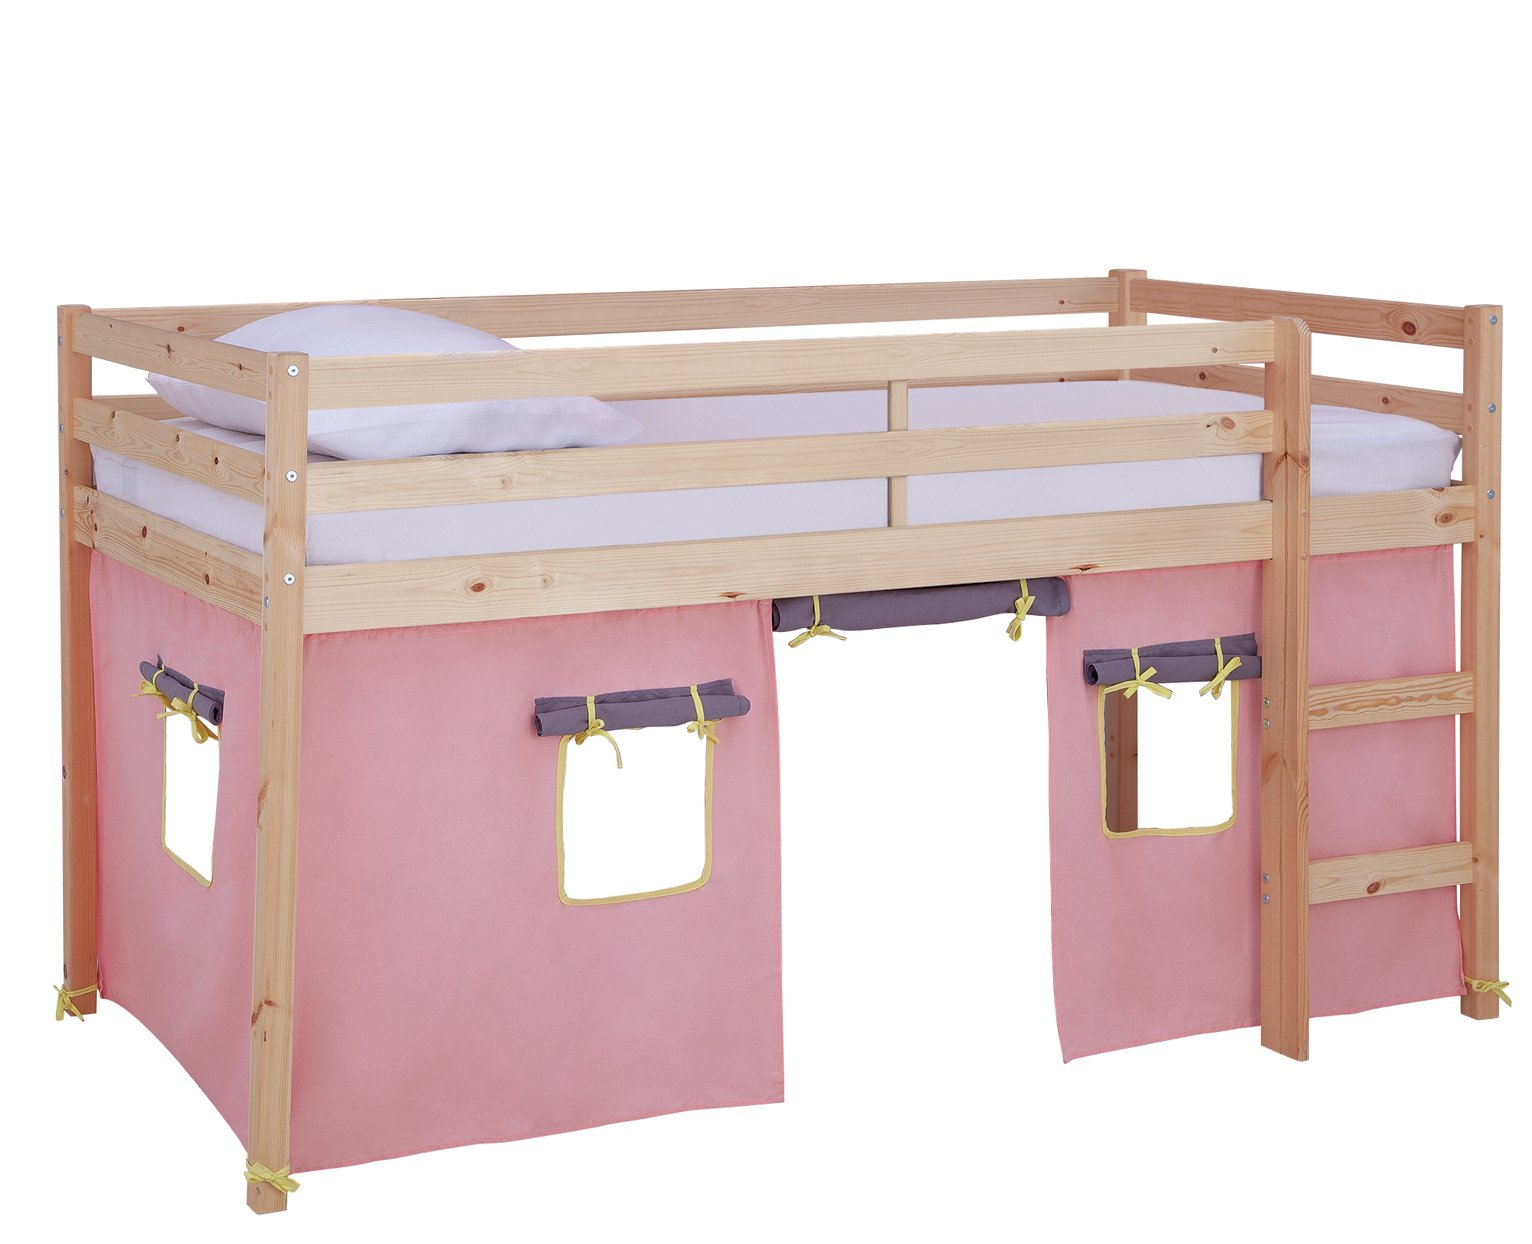 Argos Home Kaycie Pine Mid Sleeper, Rose Tent &Kids Mattress